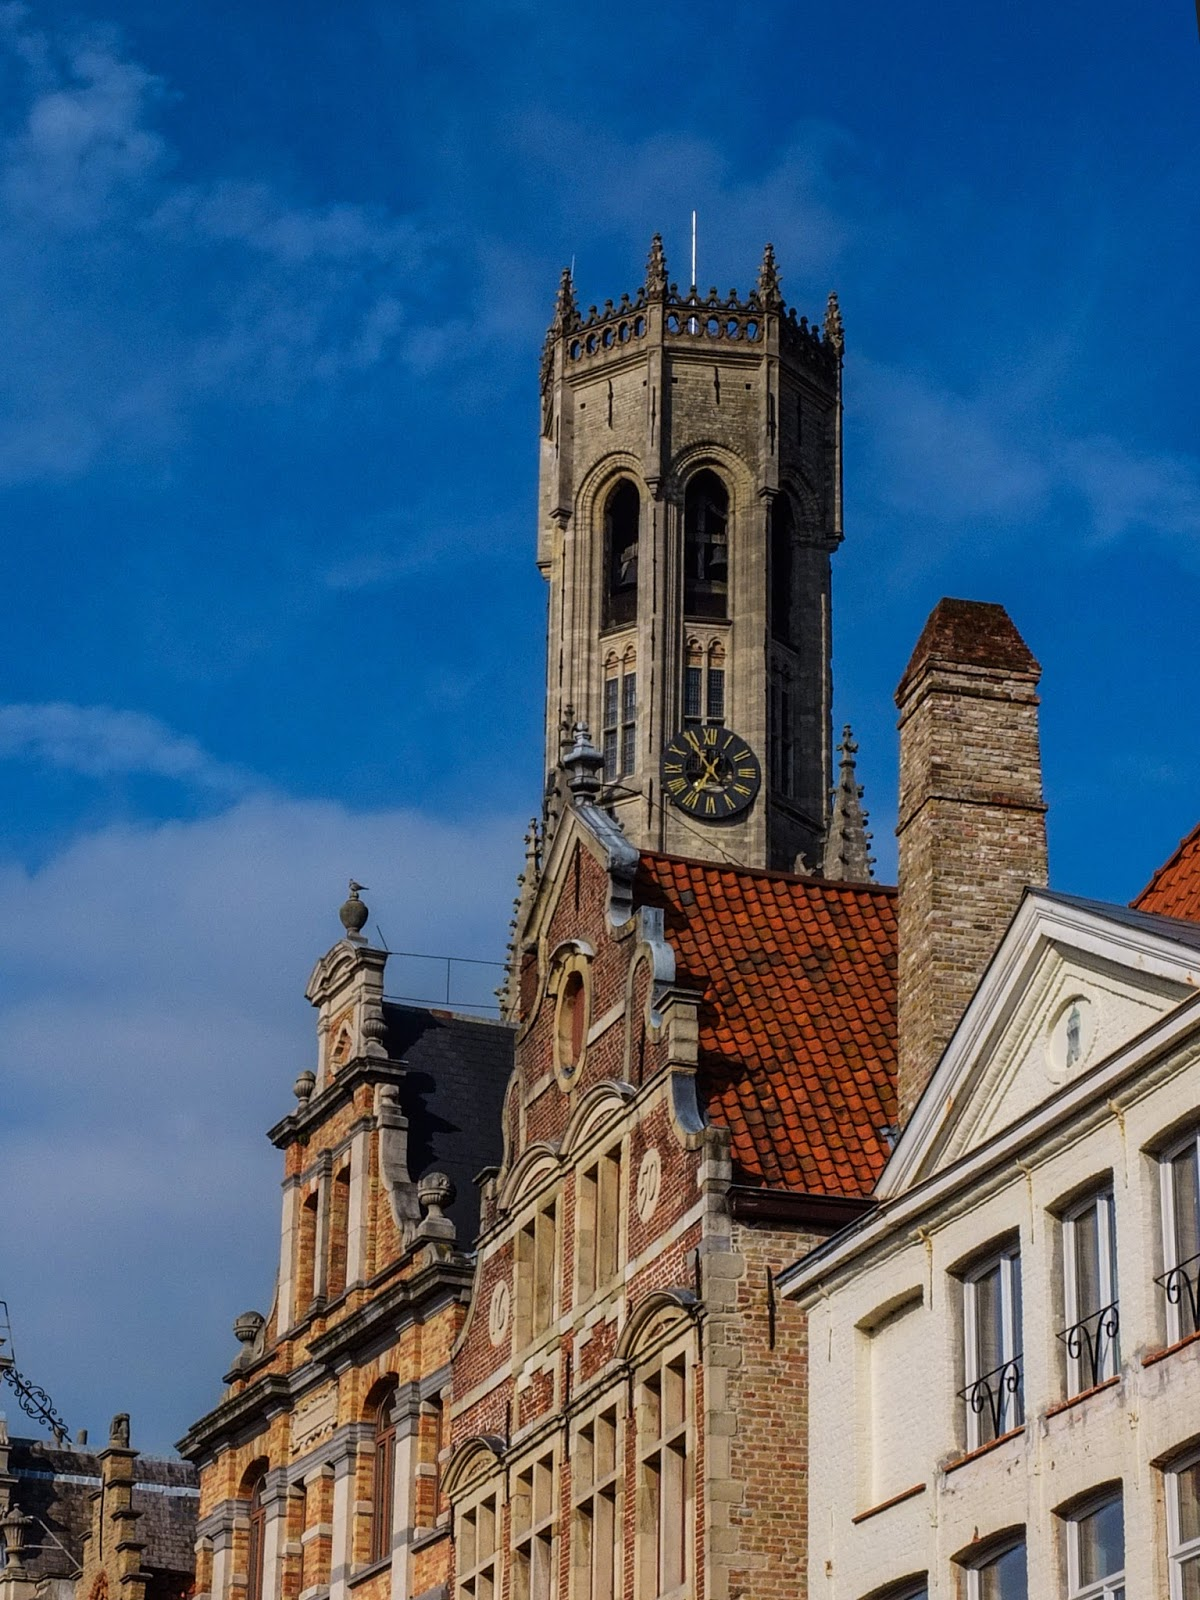 View of the Belfry of Bruges tower from behind other medieval buildings.